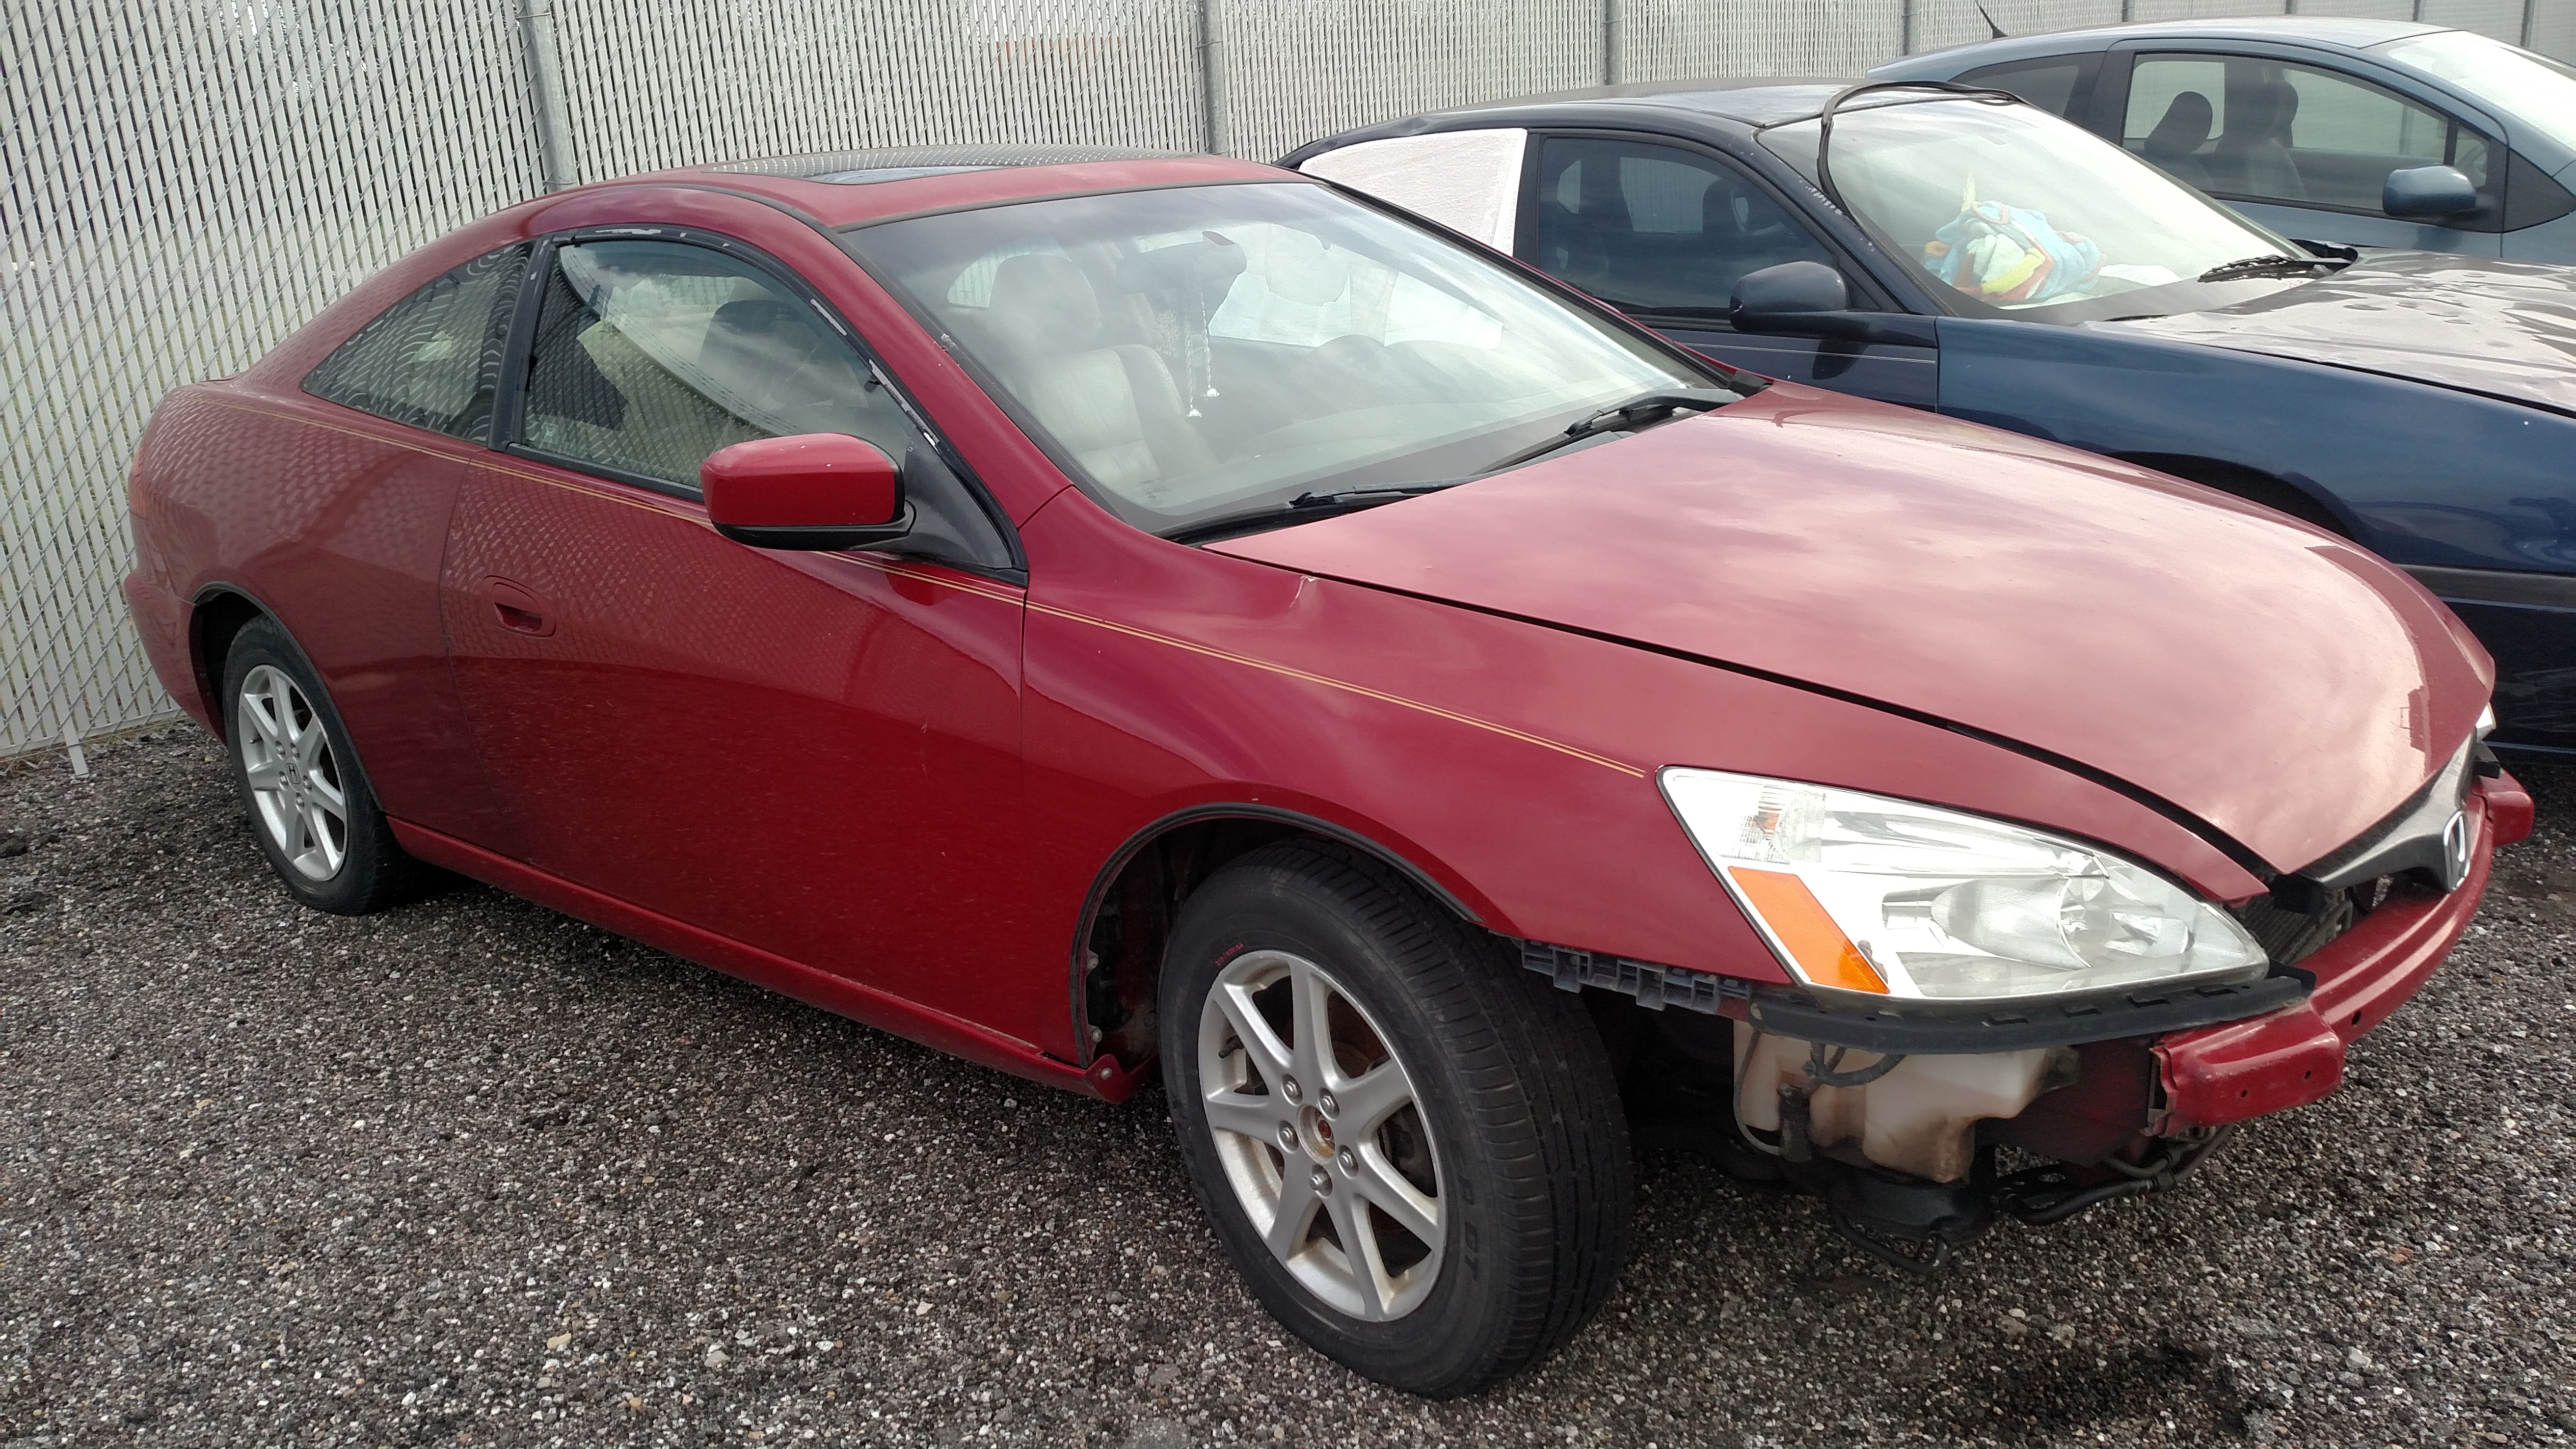 Police Car Auctions Near Me >> Best Of Police Impound Cars for Sale Near Me | used cars